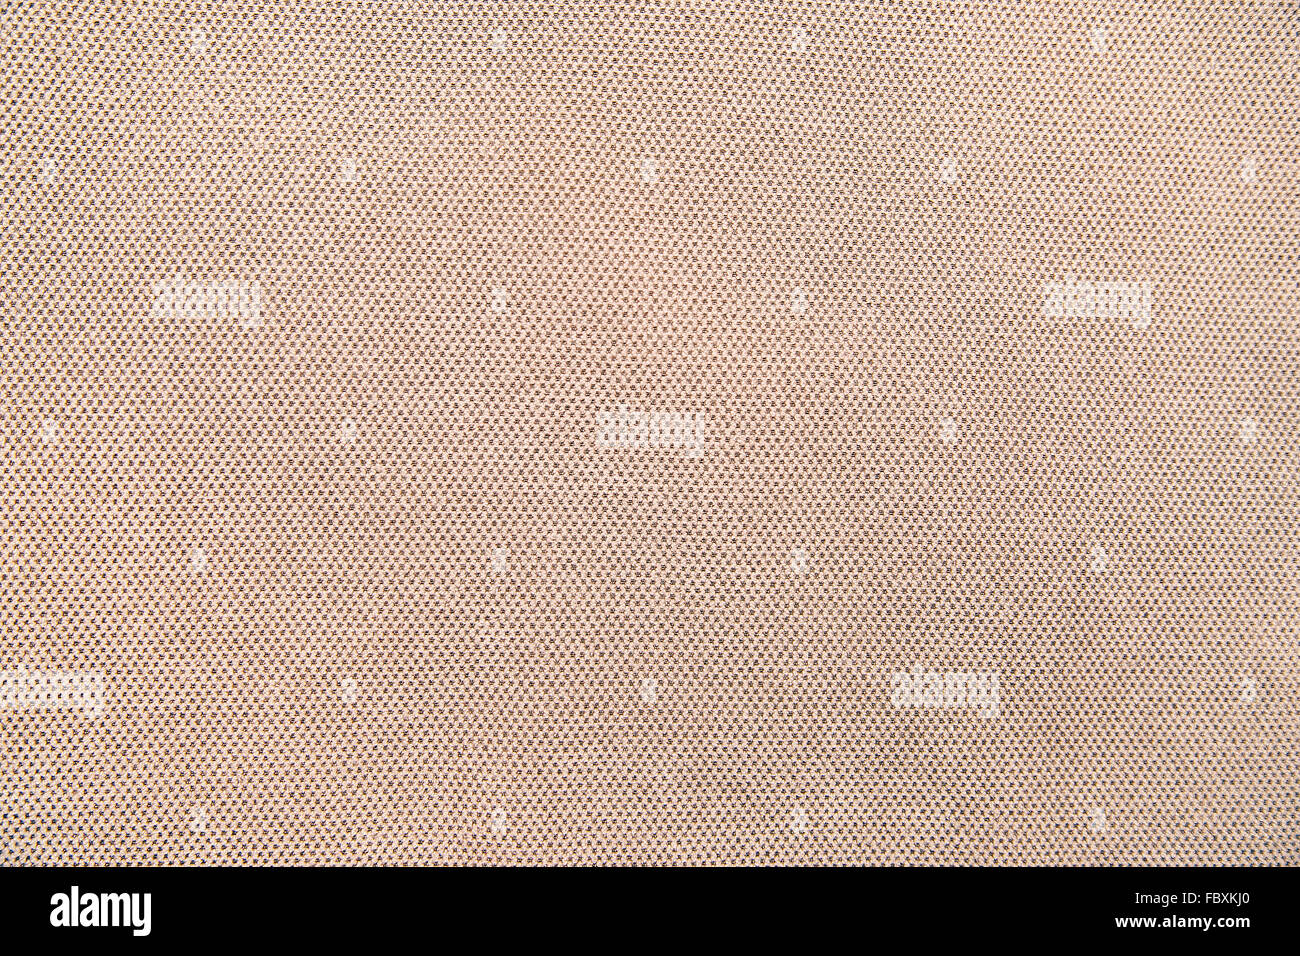 perforated fabric background - Stock Image